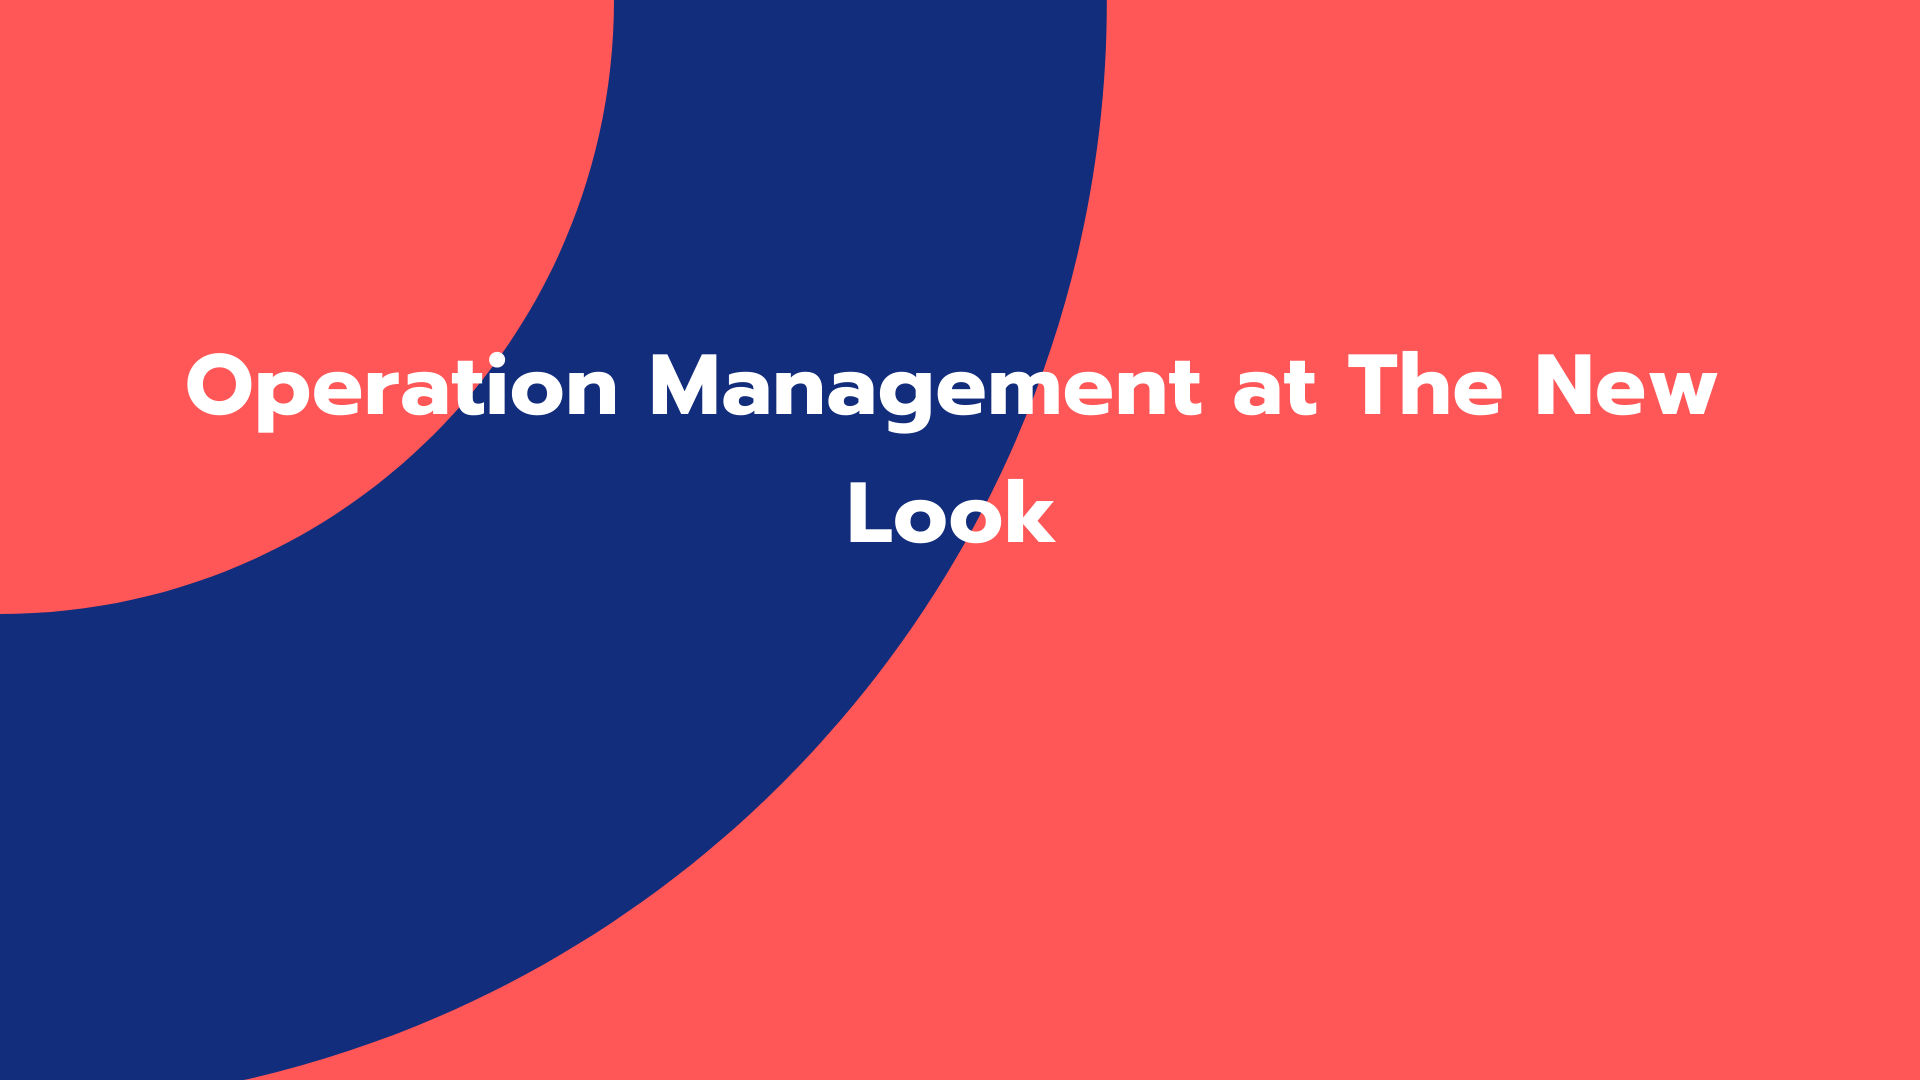 Operation Management at The New Look